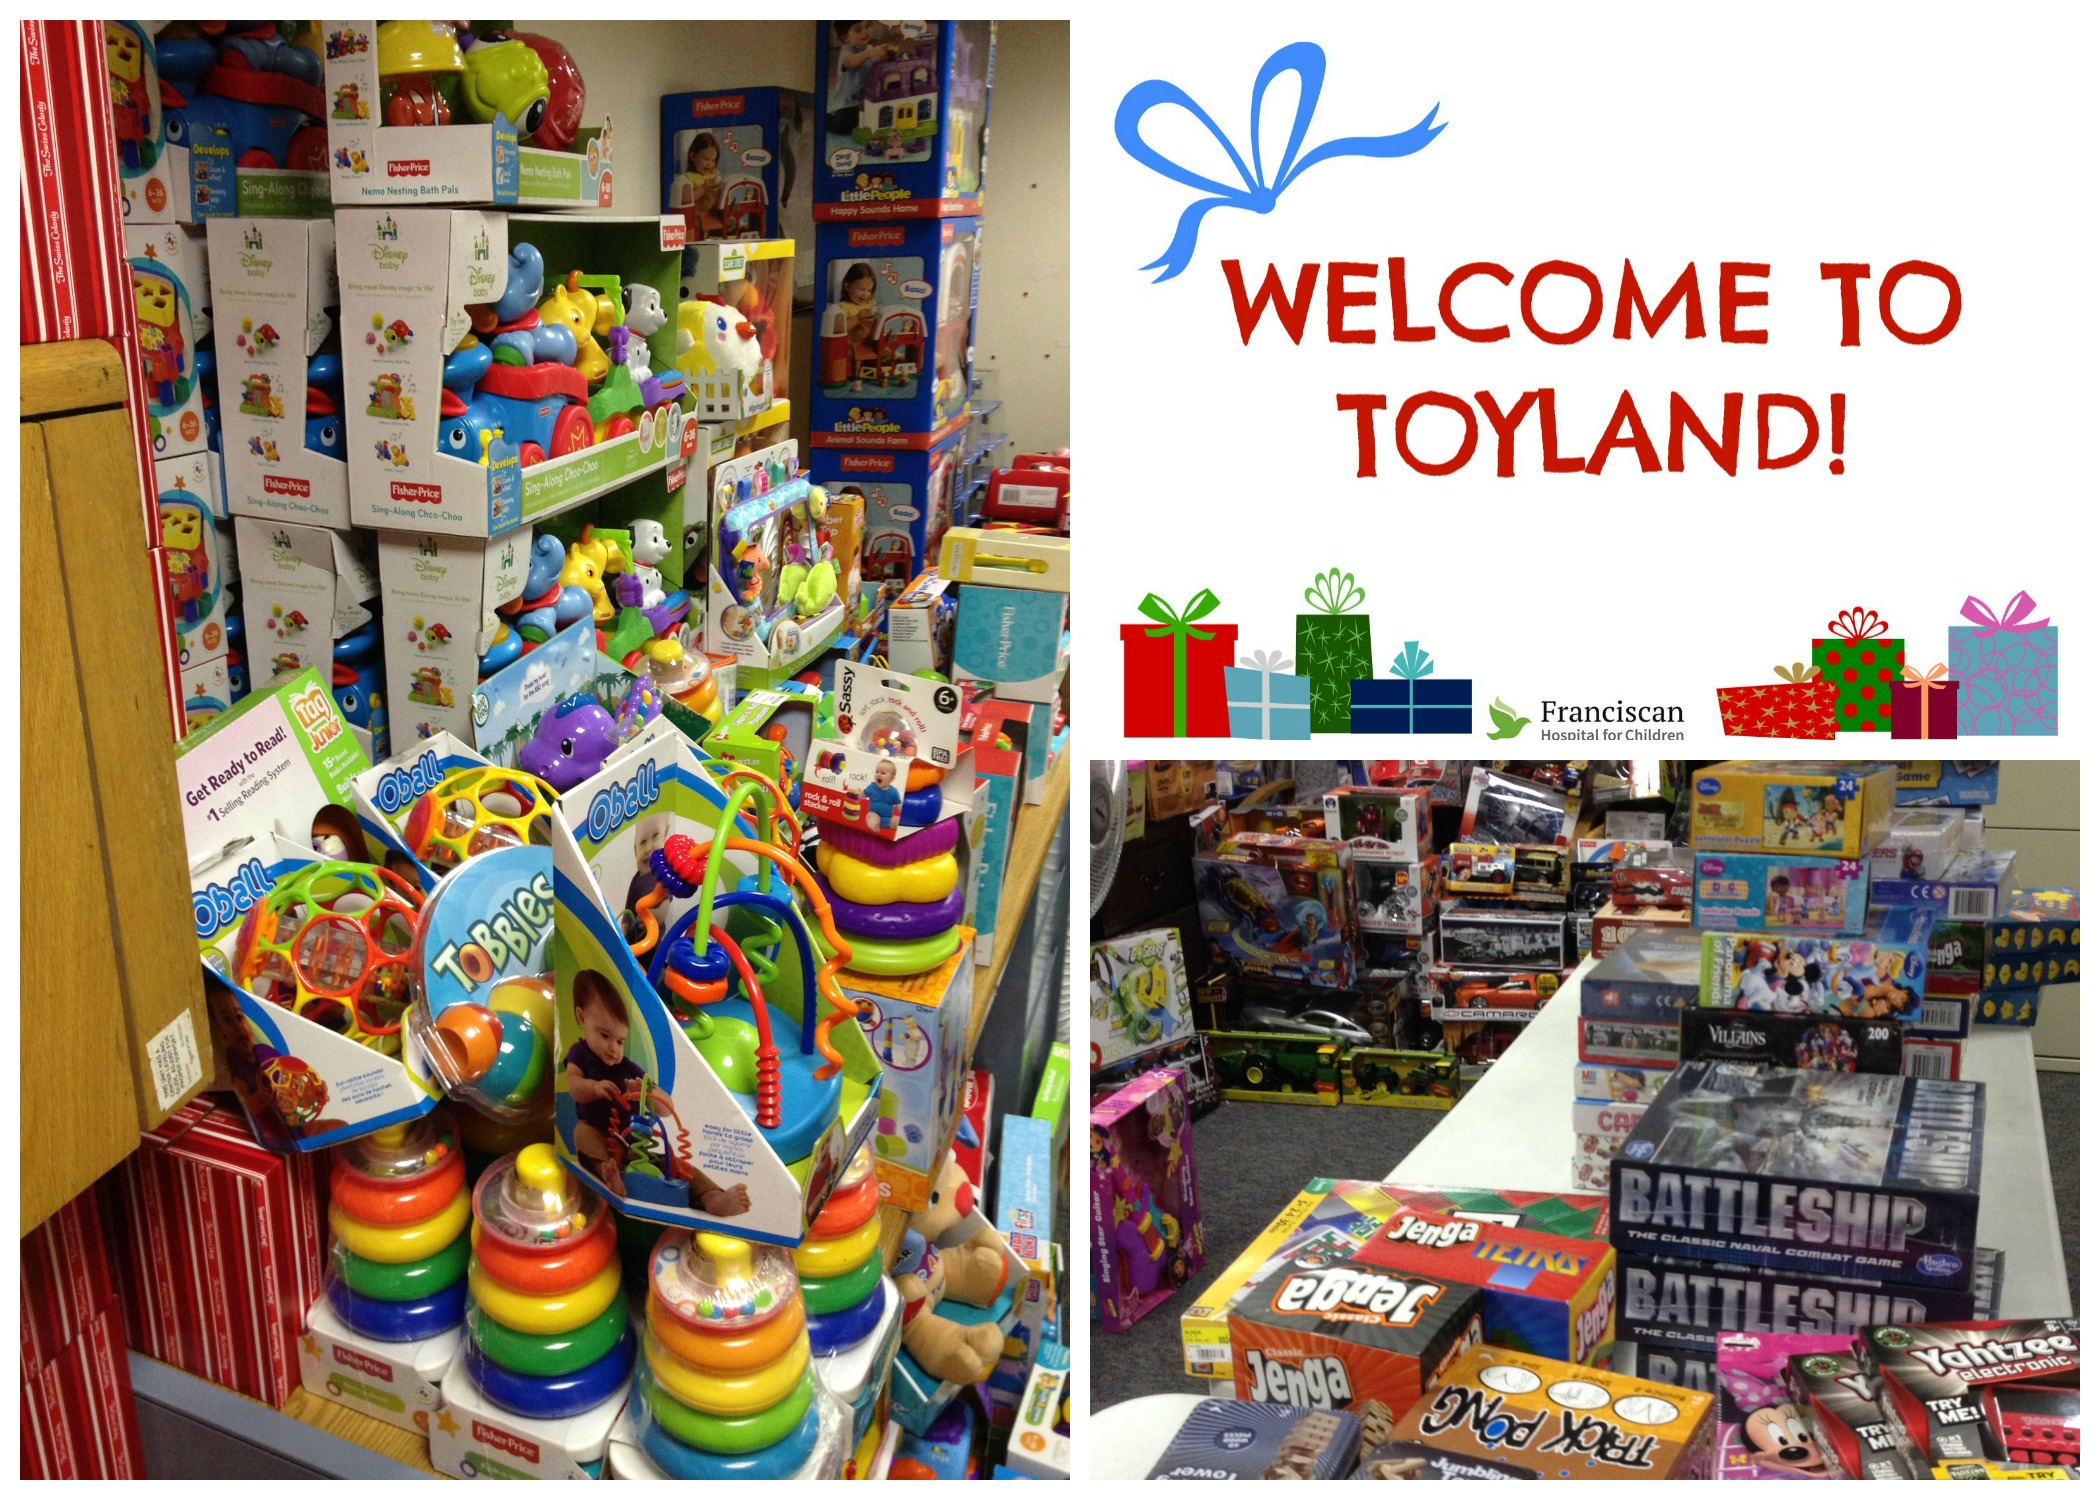 2.Toyland Collage